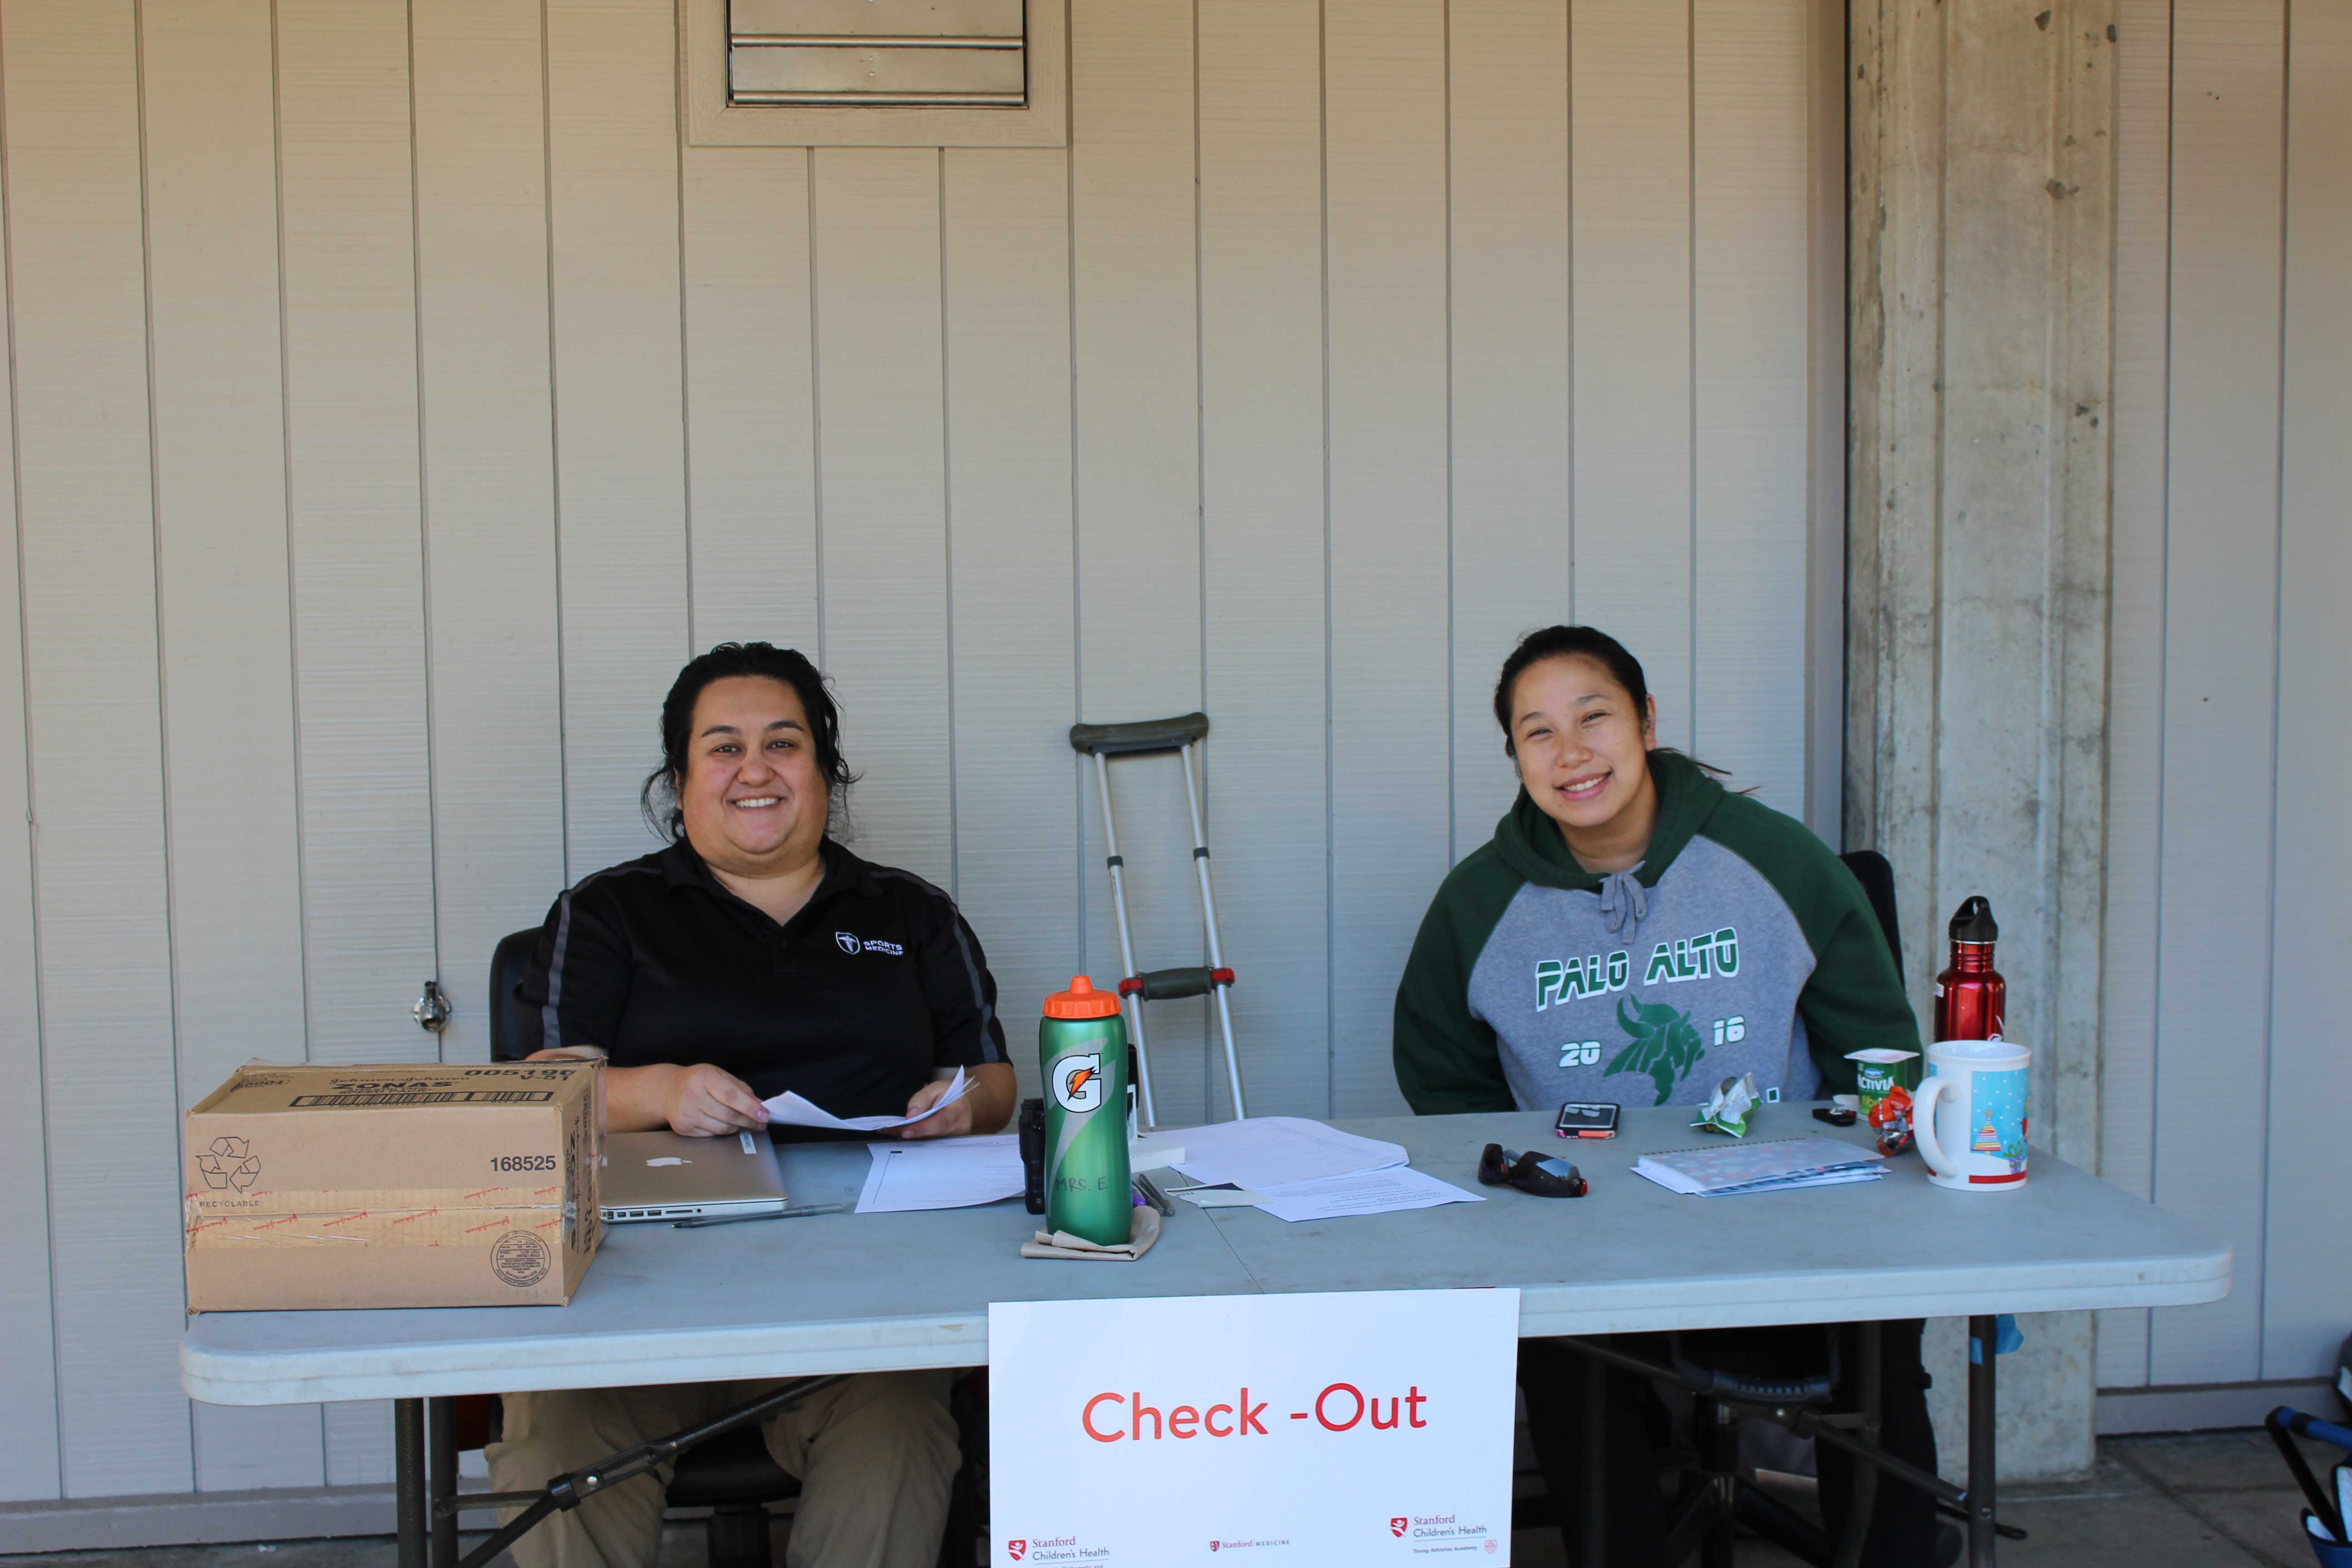 Justine Iogini and a volunteer with the Palo Alto High School athletics department work together with Stanford in providing athletes sports-med services at Gunn High School. Photo by Bianca Al-Shamari.